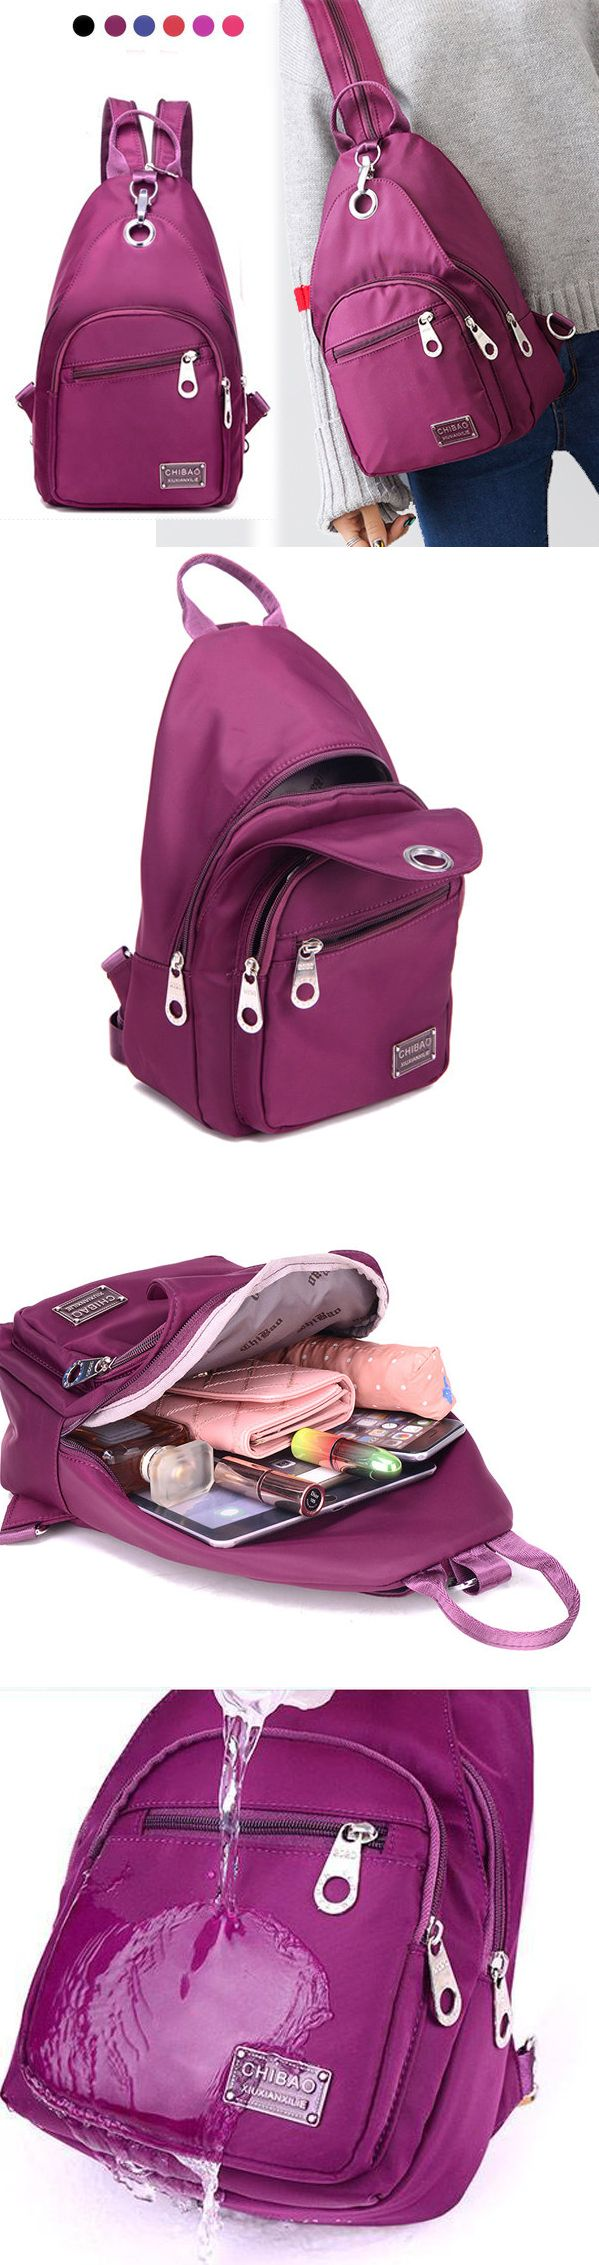 US$17.89 Six Colors Women Nylon Chest Bag Upgrade High-End Daily Crossbody Bag Waterproof Shoulder Bag